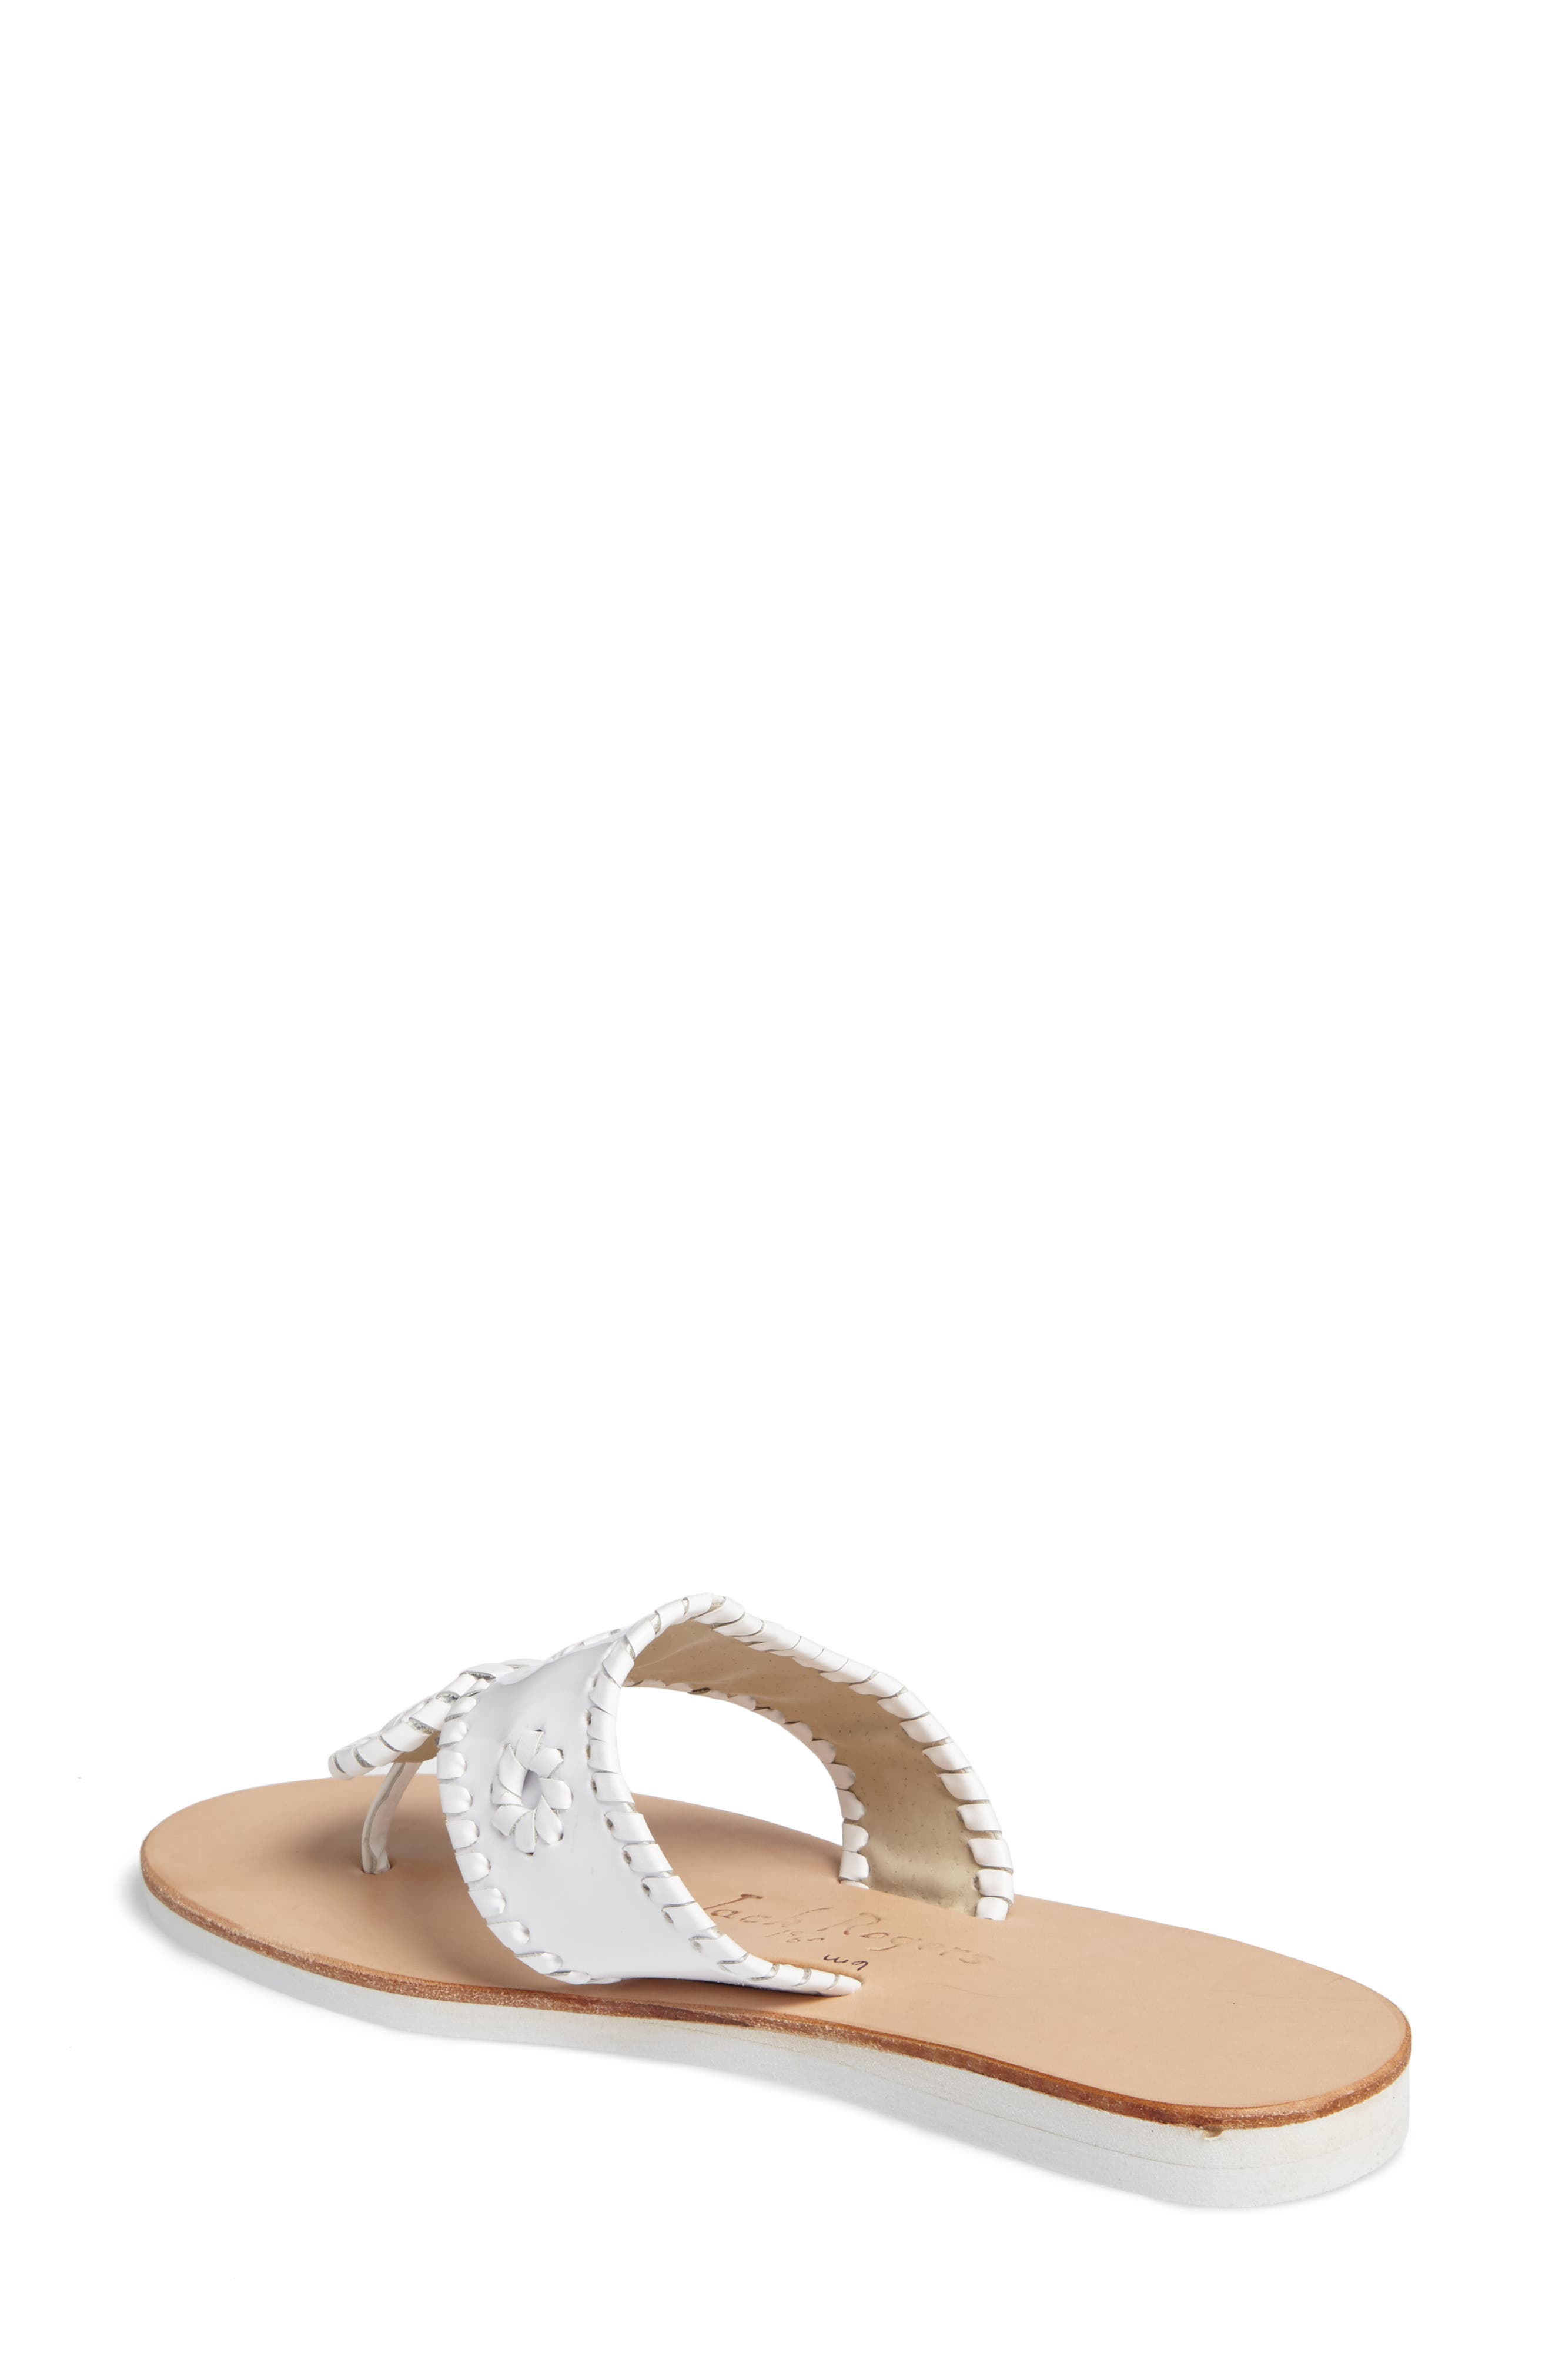 Alternate Image 2  - Jack Rogers Boating Jacks Thong Sandal (Women)